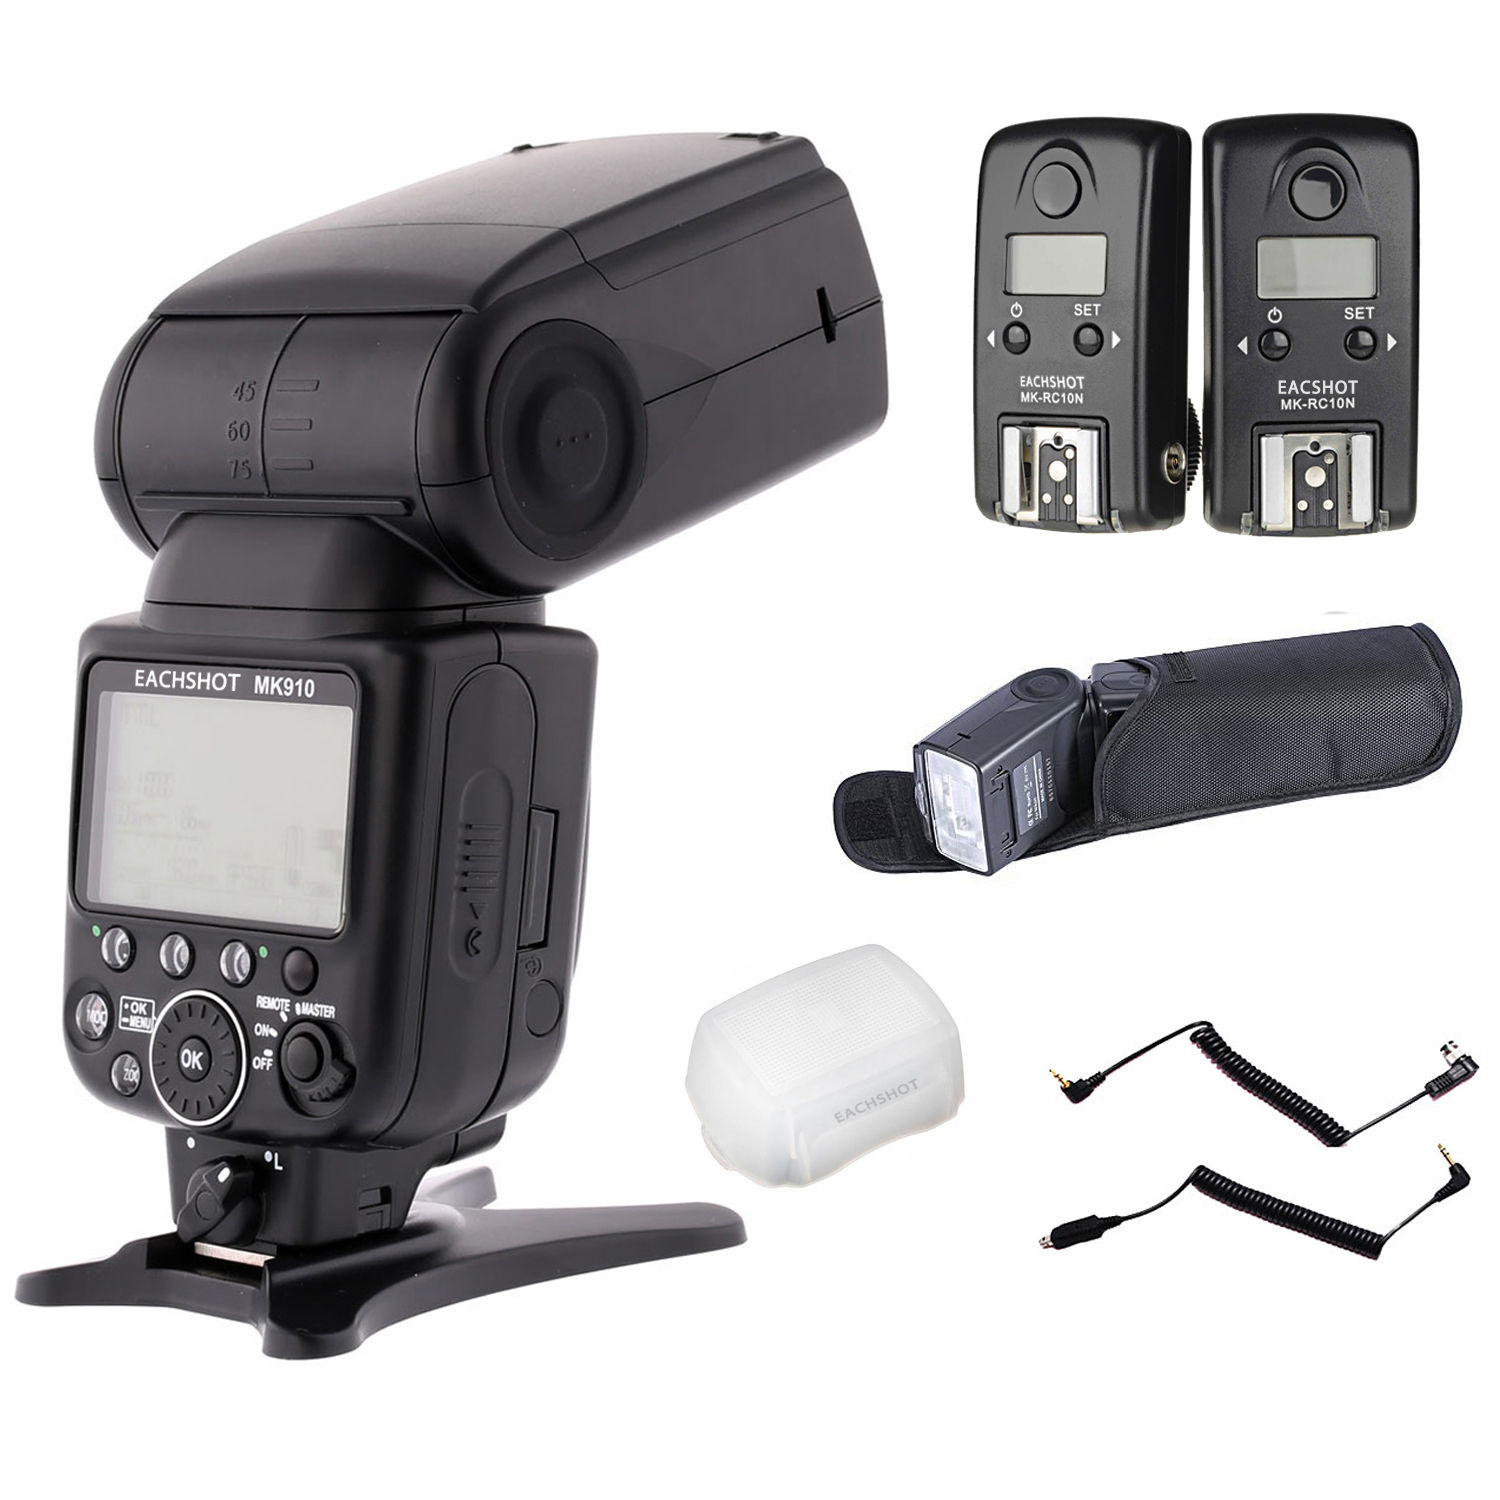 Meike MK-910 MK 910 TTL HSS Flash Speedlight + MK-RC10N RC10N HSS TTL Flash Trigger for Nikon D3S D50 D60 D70 D70S D80 D80S D200